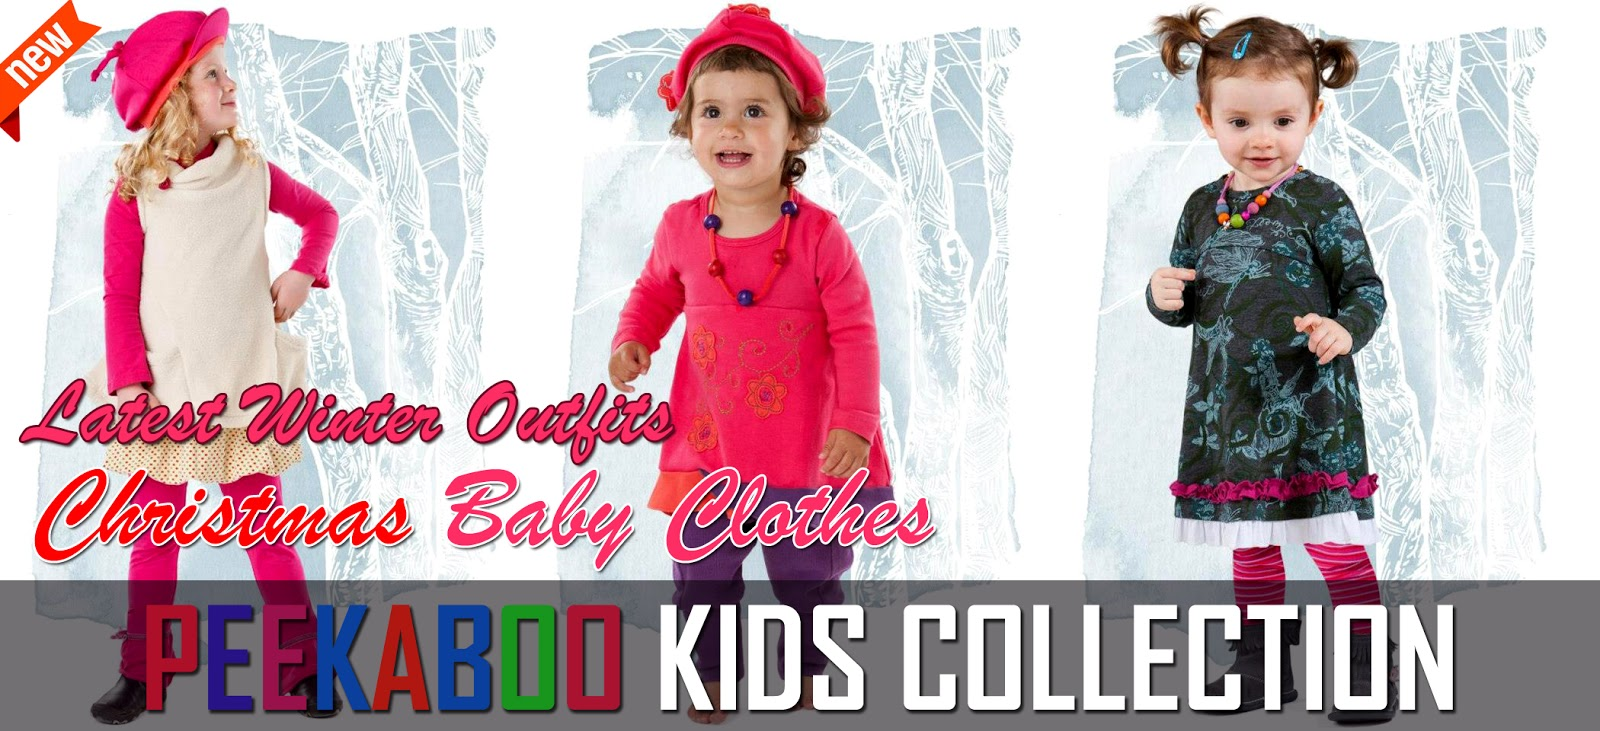 Baby Kids Clothing Beauty Clothes